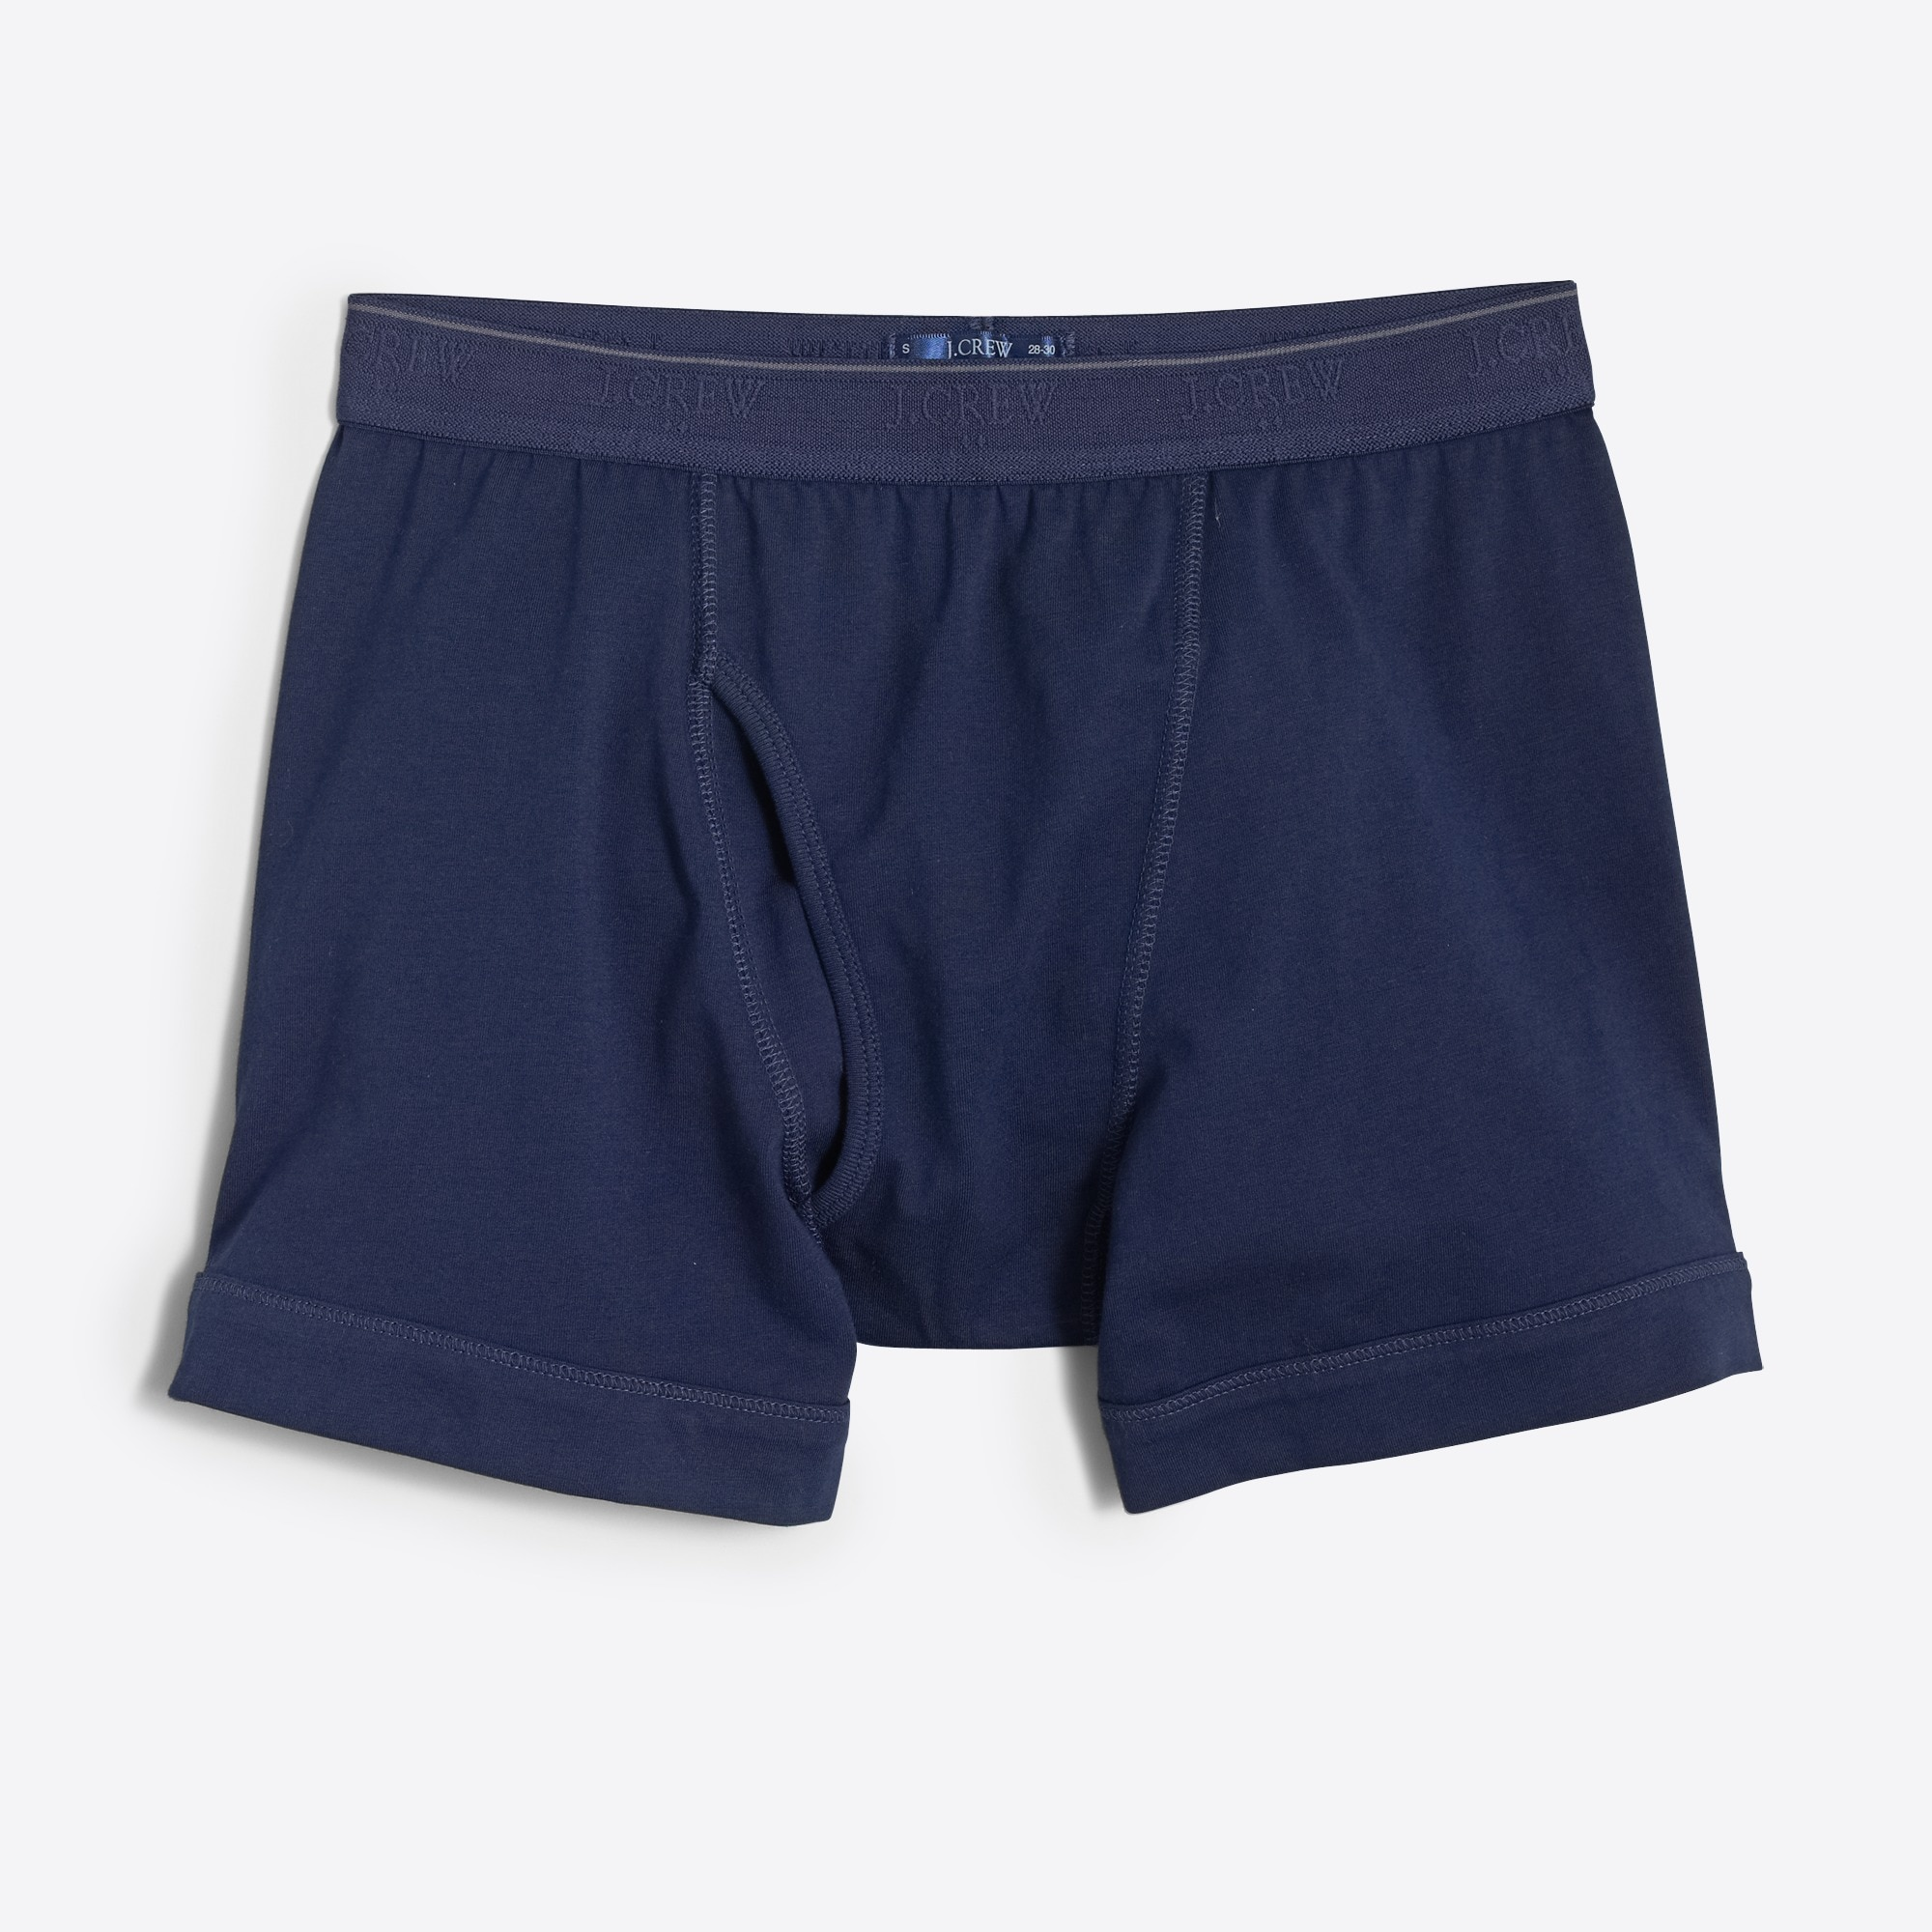 factory mens Boxer briefs